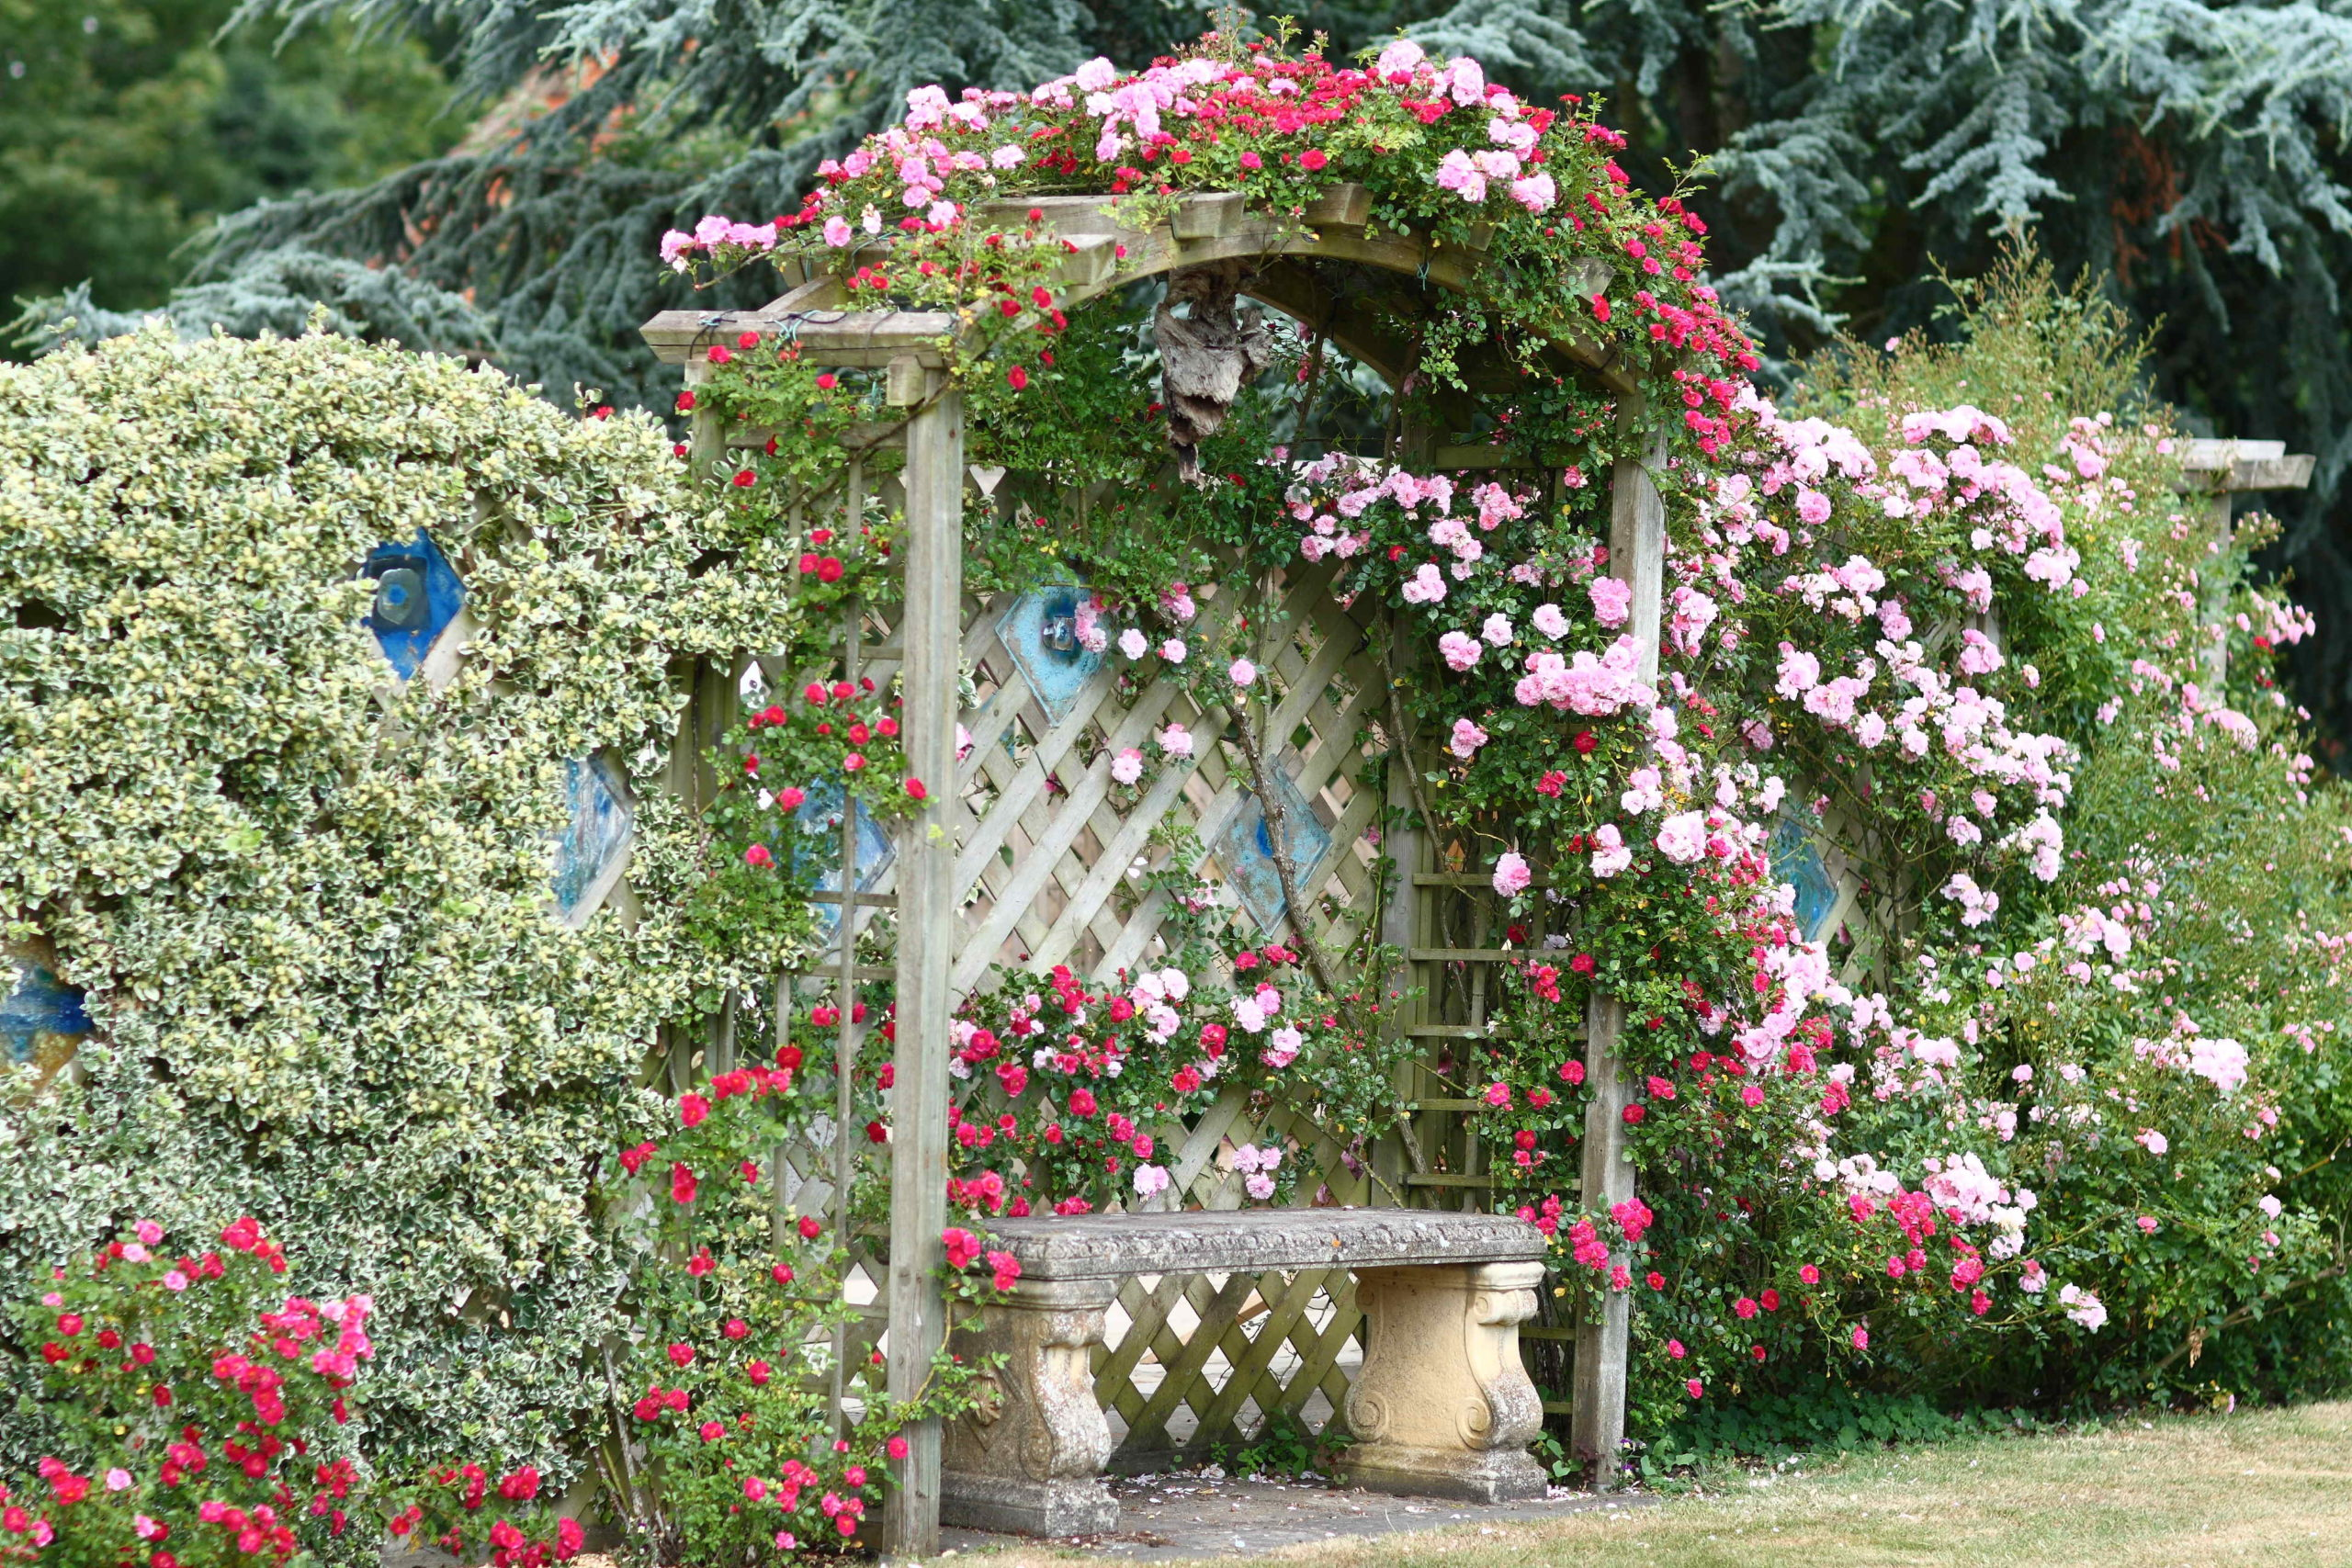 Best cottage style garden ideas for landscaping #26